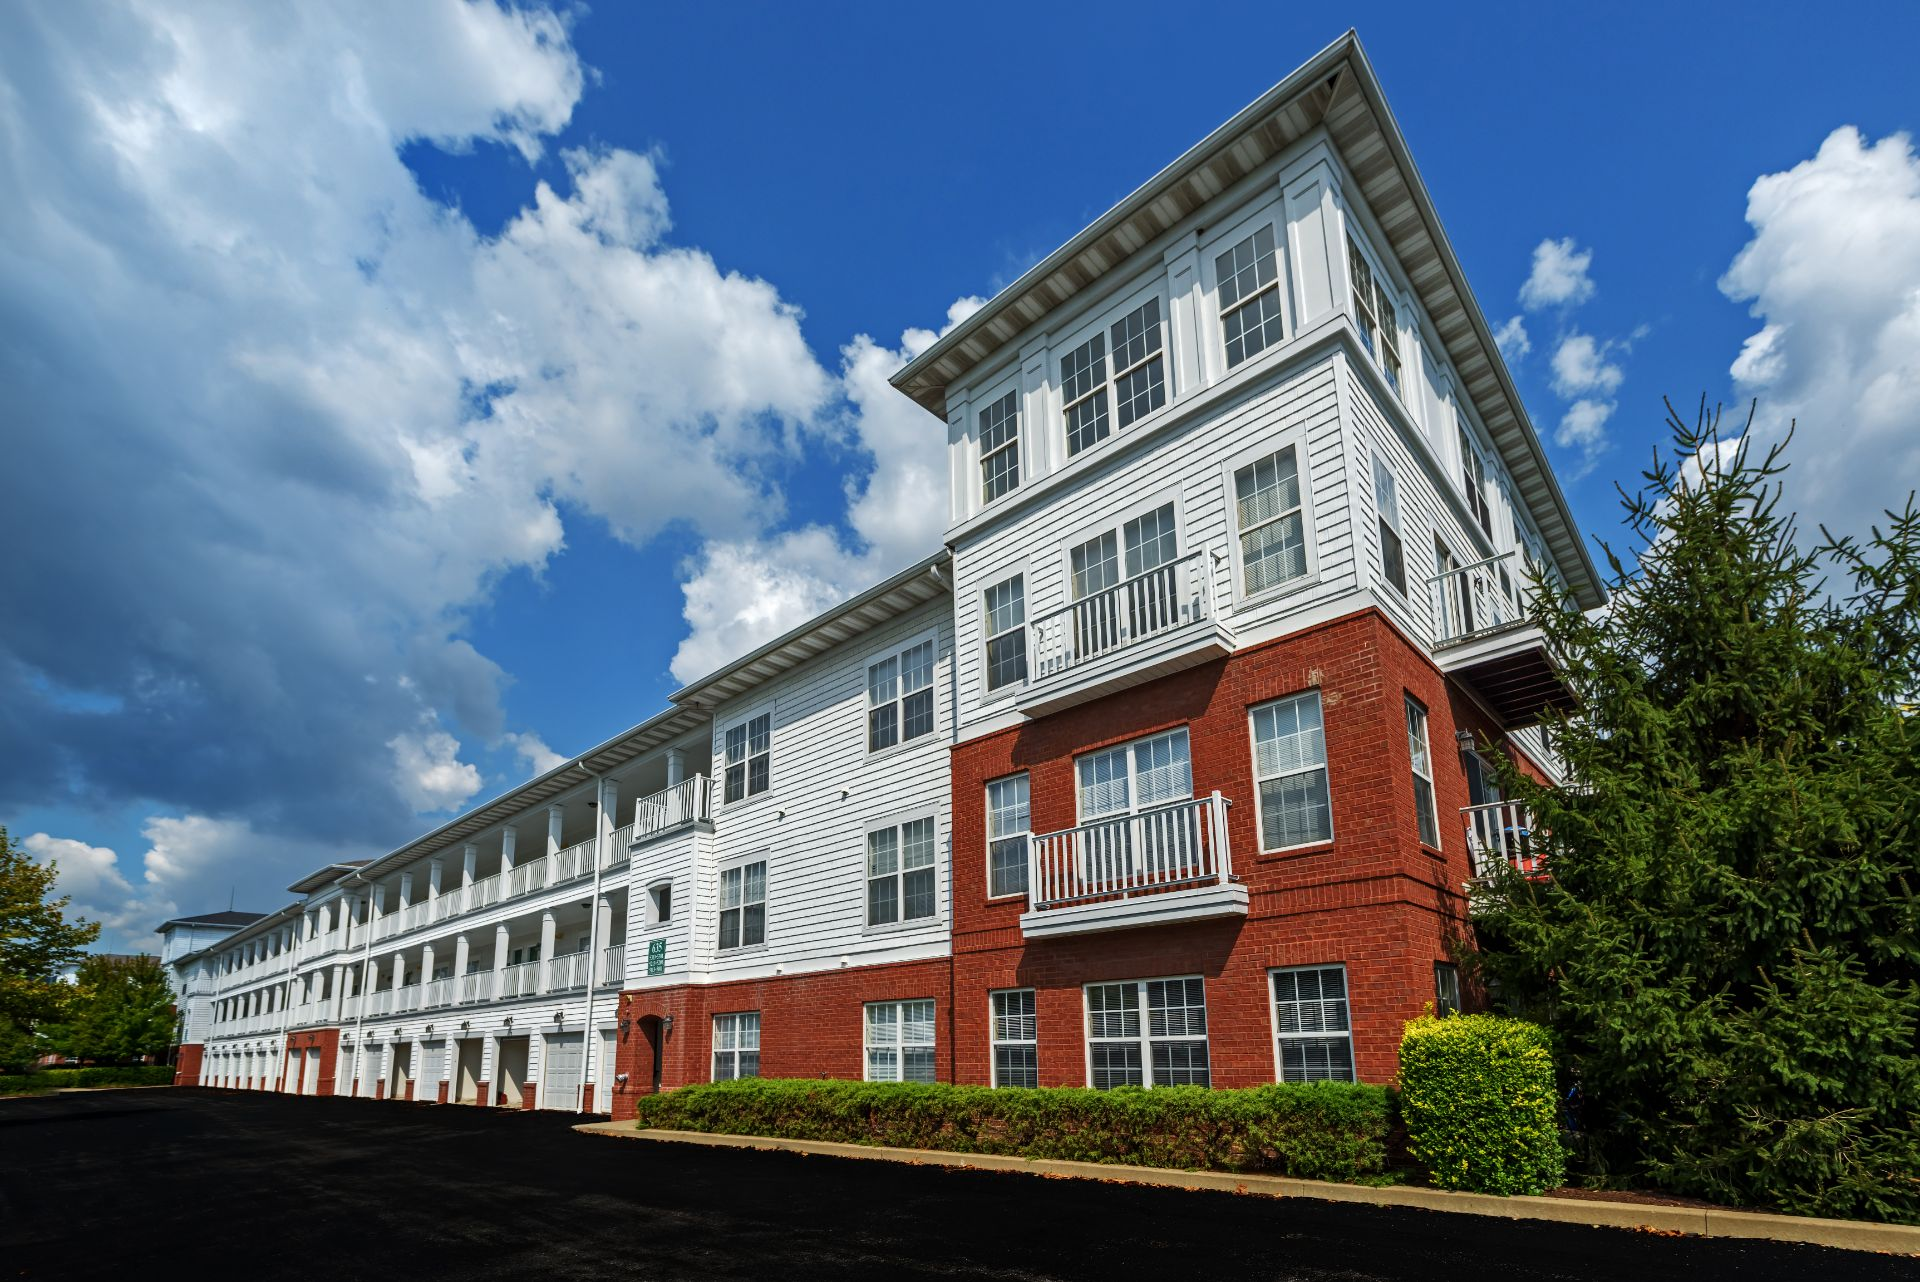 The Waterfront Apartments and Townhomes near I-376 and short commute to Downtown Pittsburgh, Oakland and the North Shore,  611 E. Waterfront Drive, Munhall, PA 15120